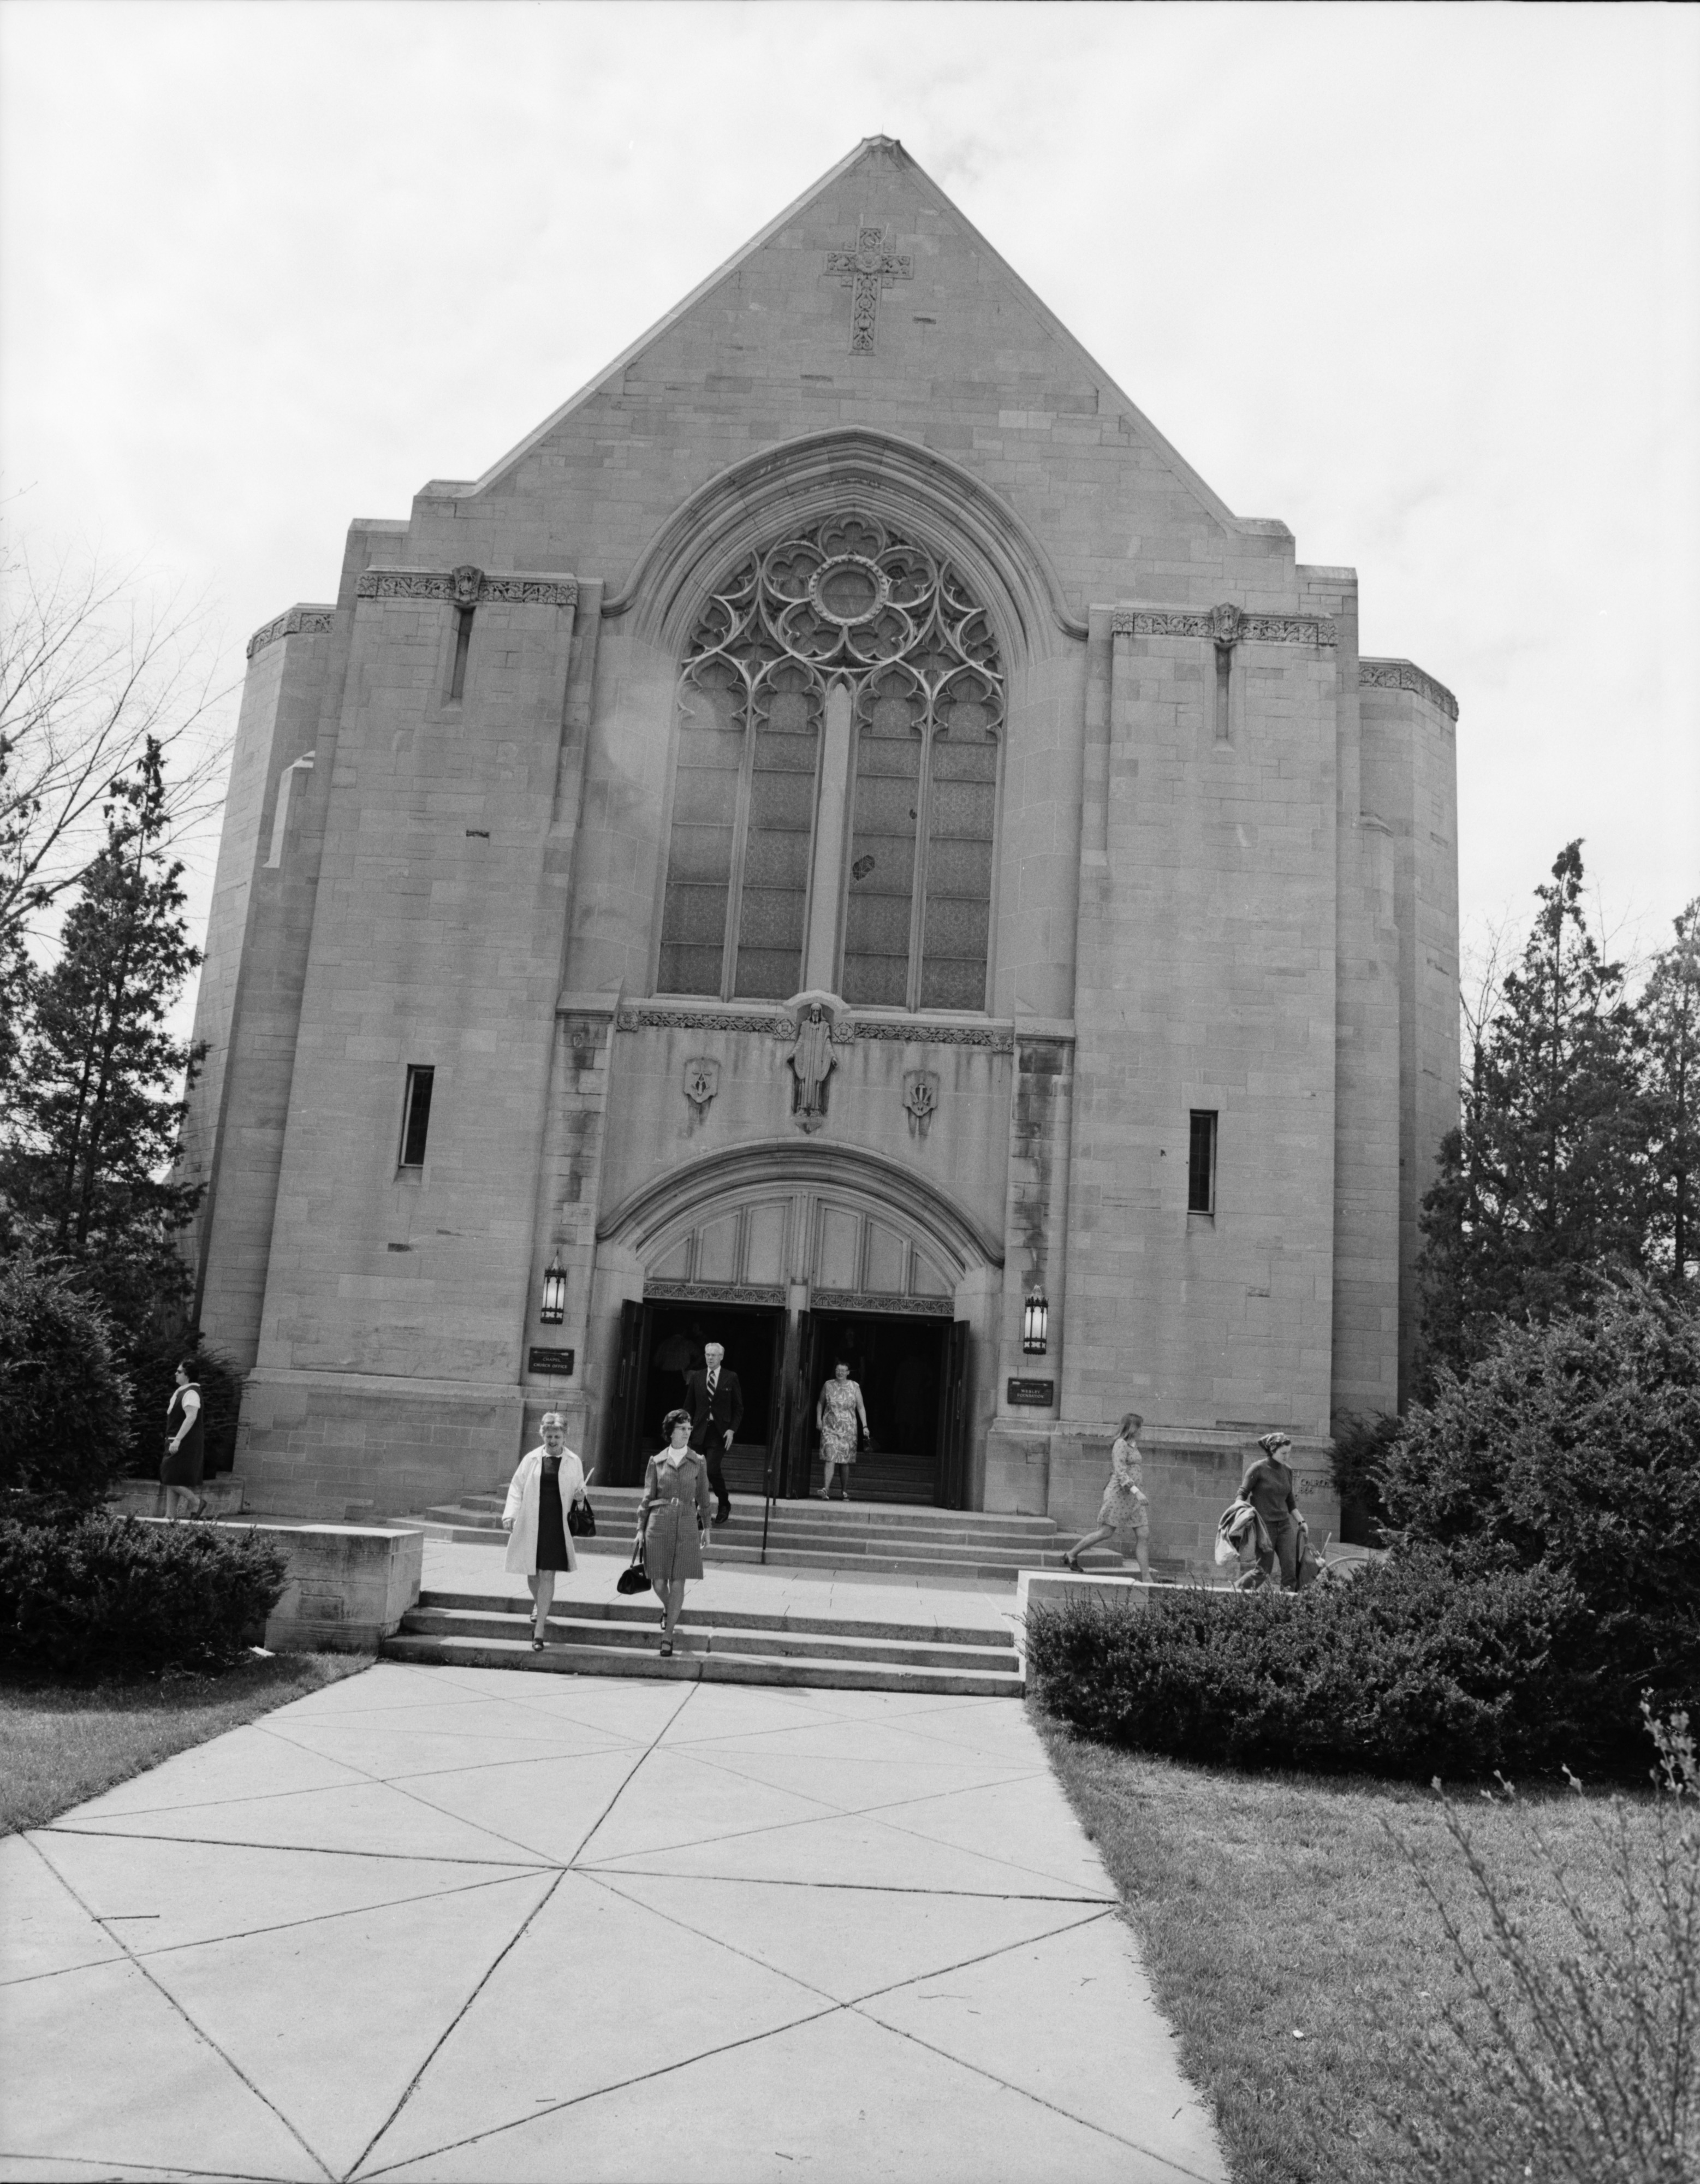 Worshippers Leave First United Methodist Church After Good Friday Services, April 1973 image